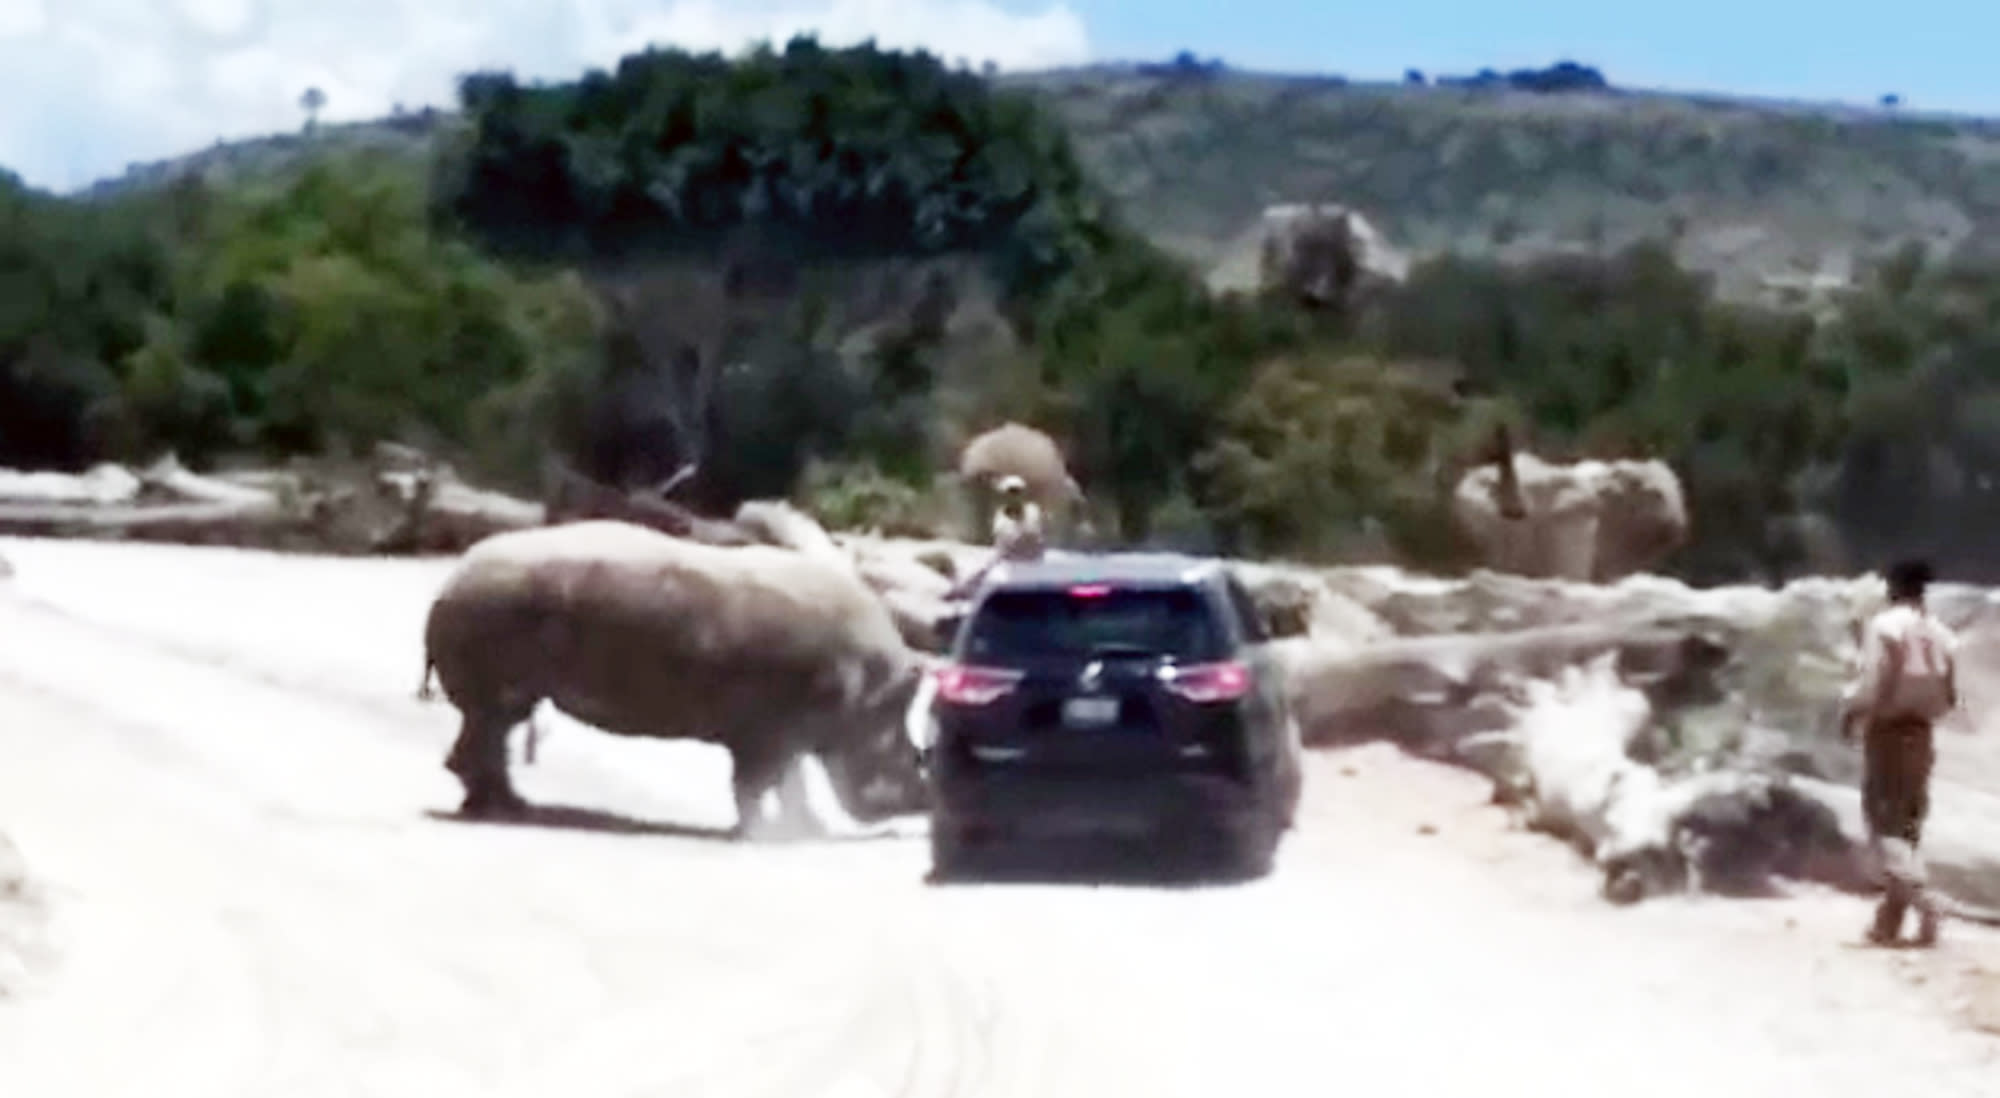 The rhino rammed the car repeatedly with its horn (CEN)